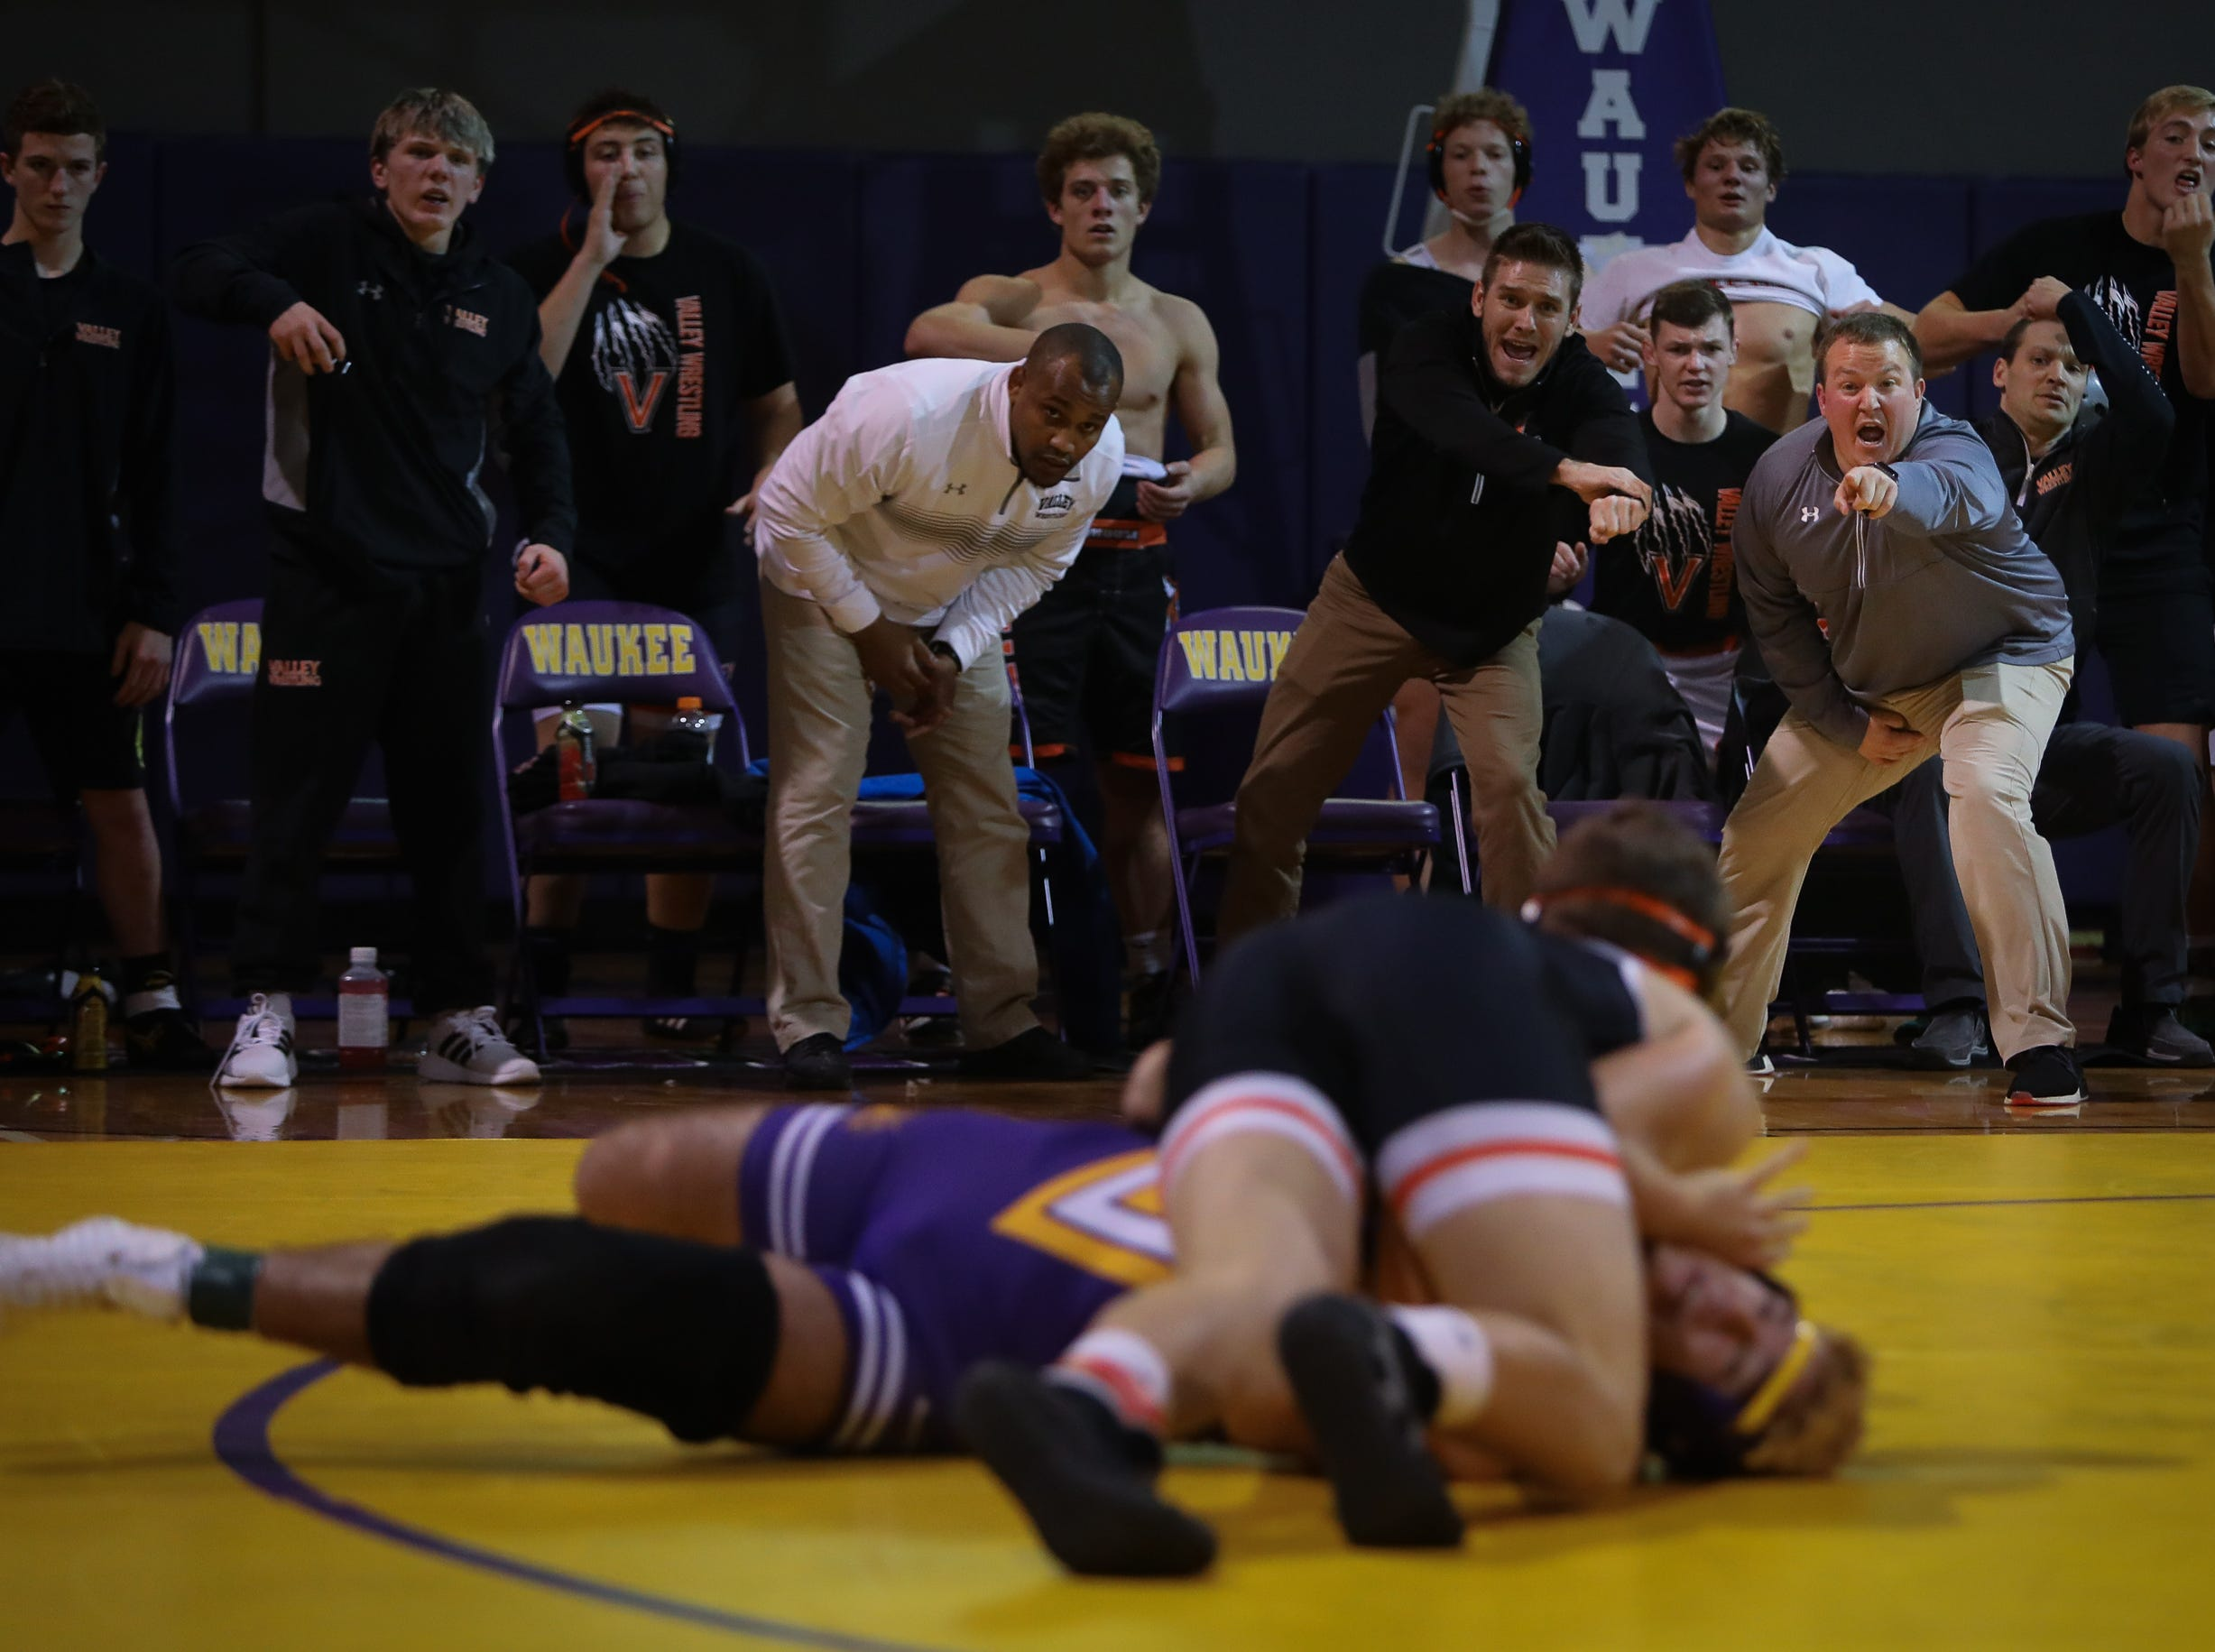 The Valley coaching staff yells out instructions to their wrestler during a high school wrestling meet between the Valley Tigers and the Waukee Warriors at Waukee High School on Dec. 20, 2018 in Waukee, Iowa.